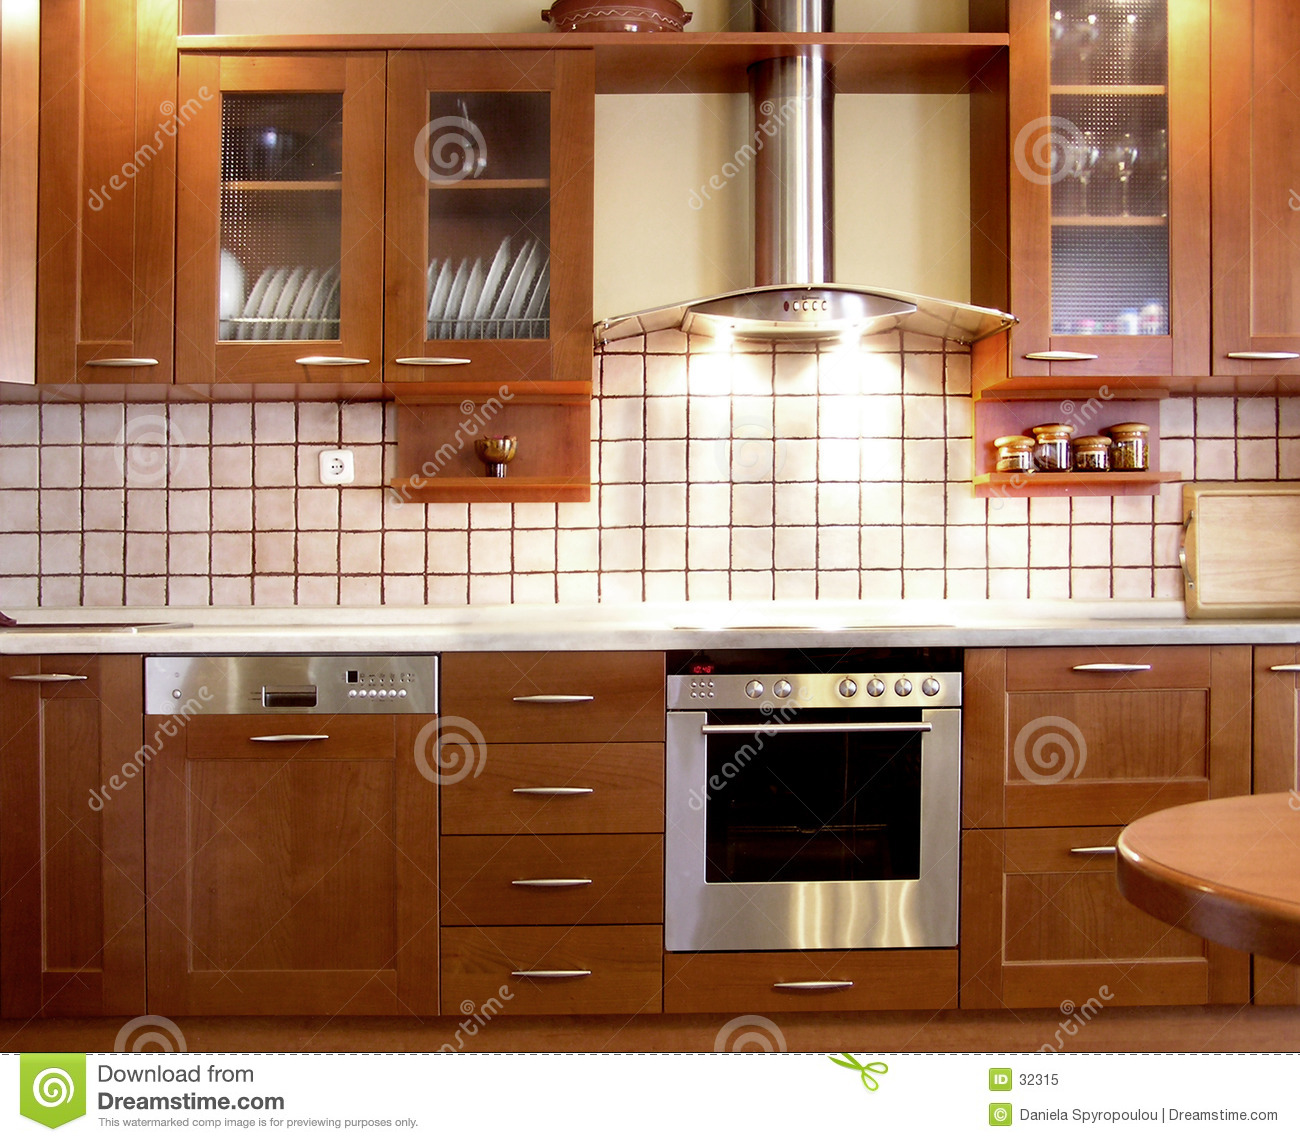 Cherry Kitchen Design Stock Image Image Of Kitchens